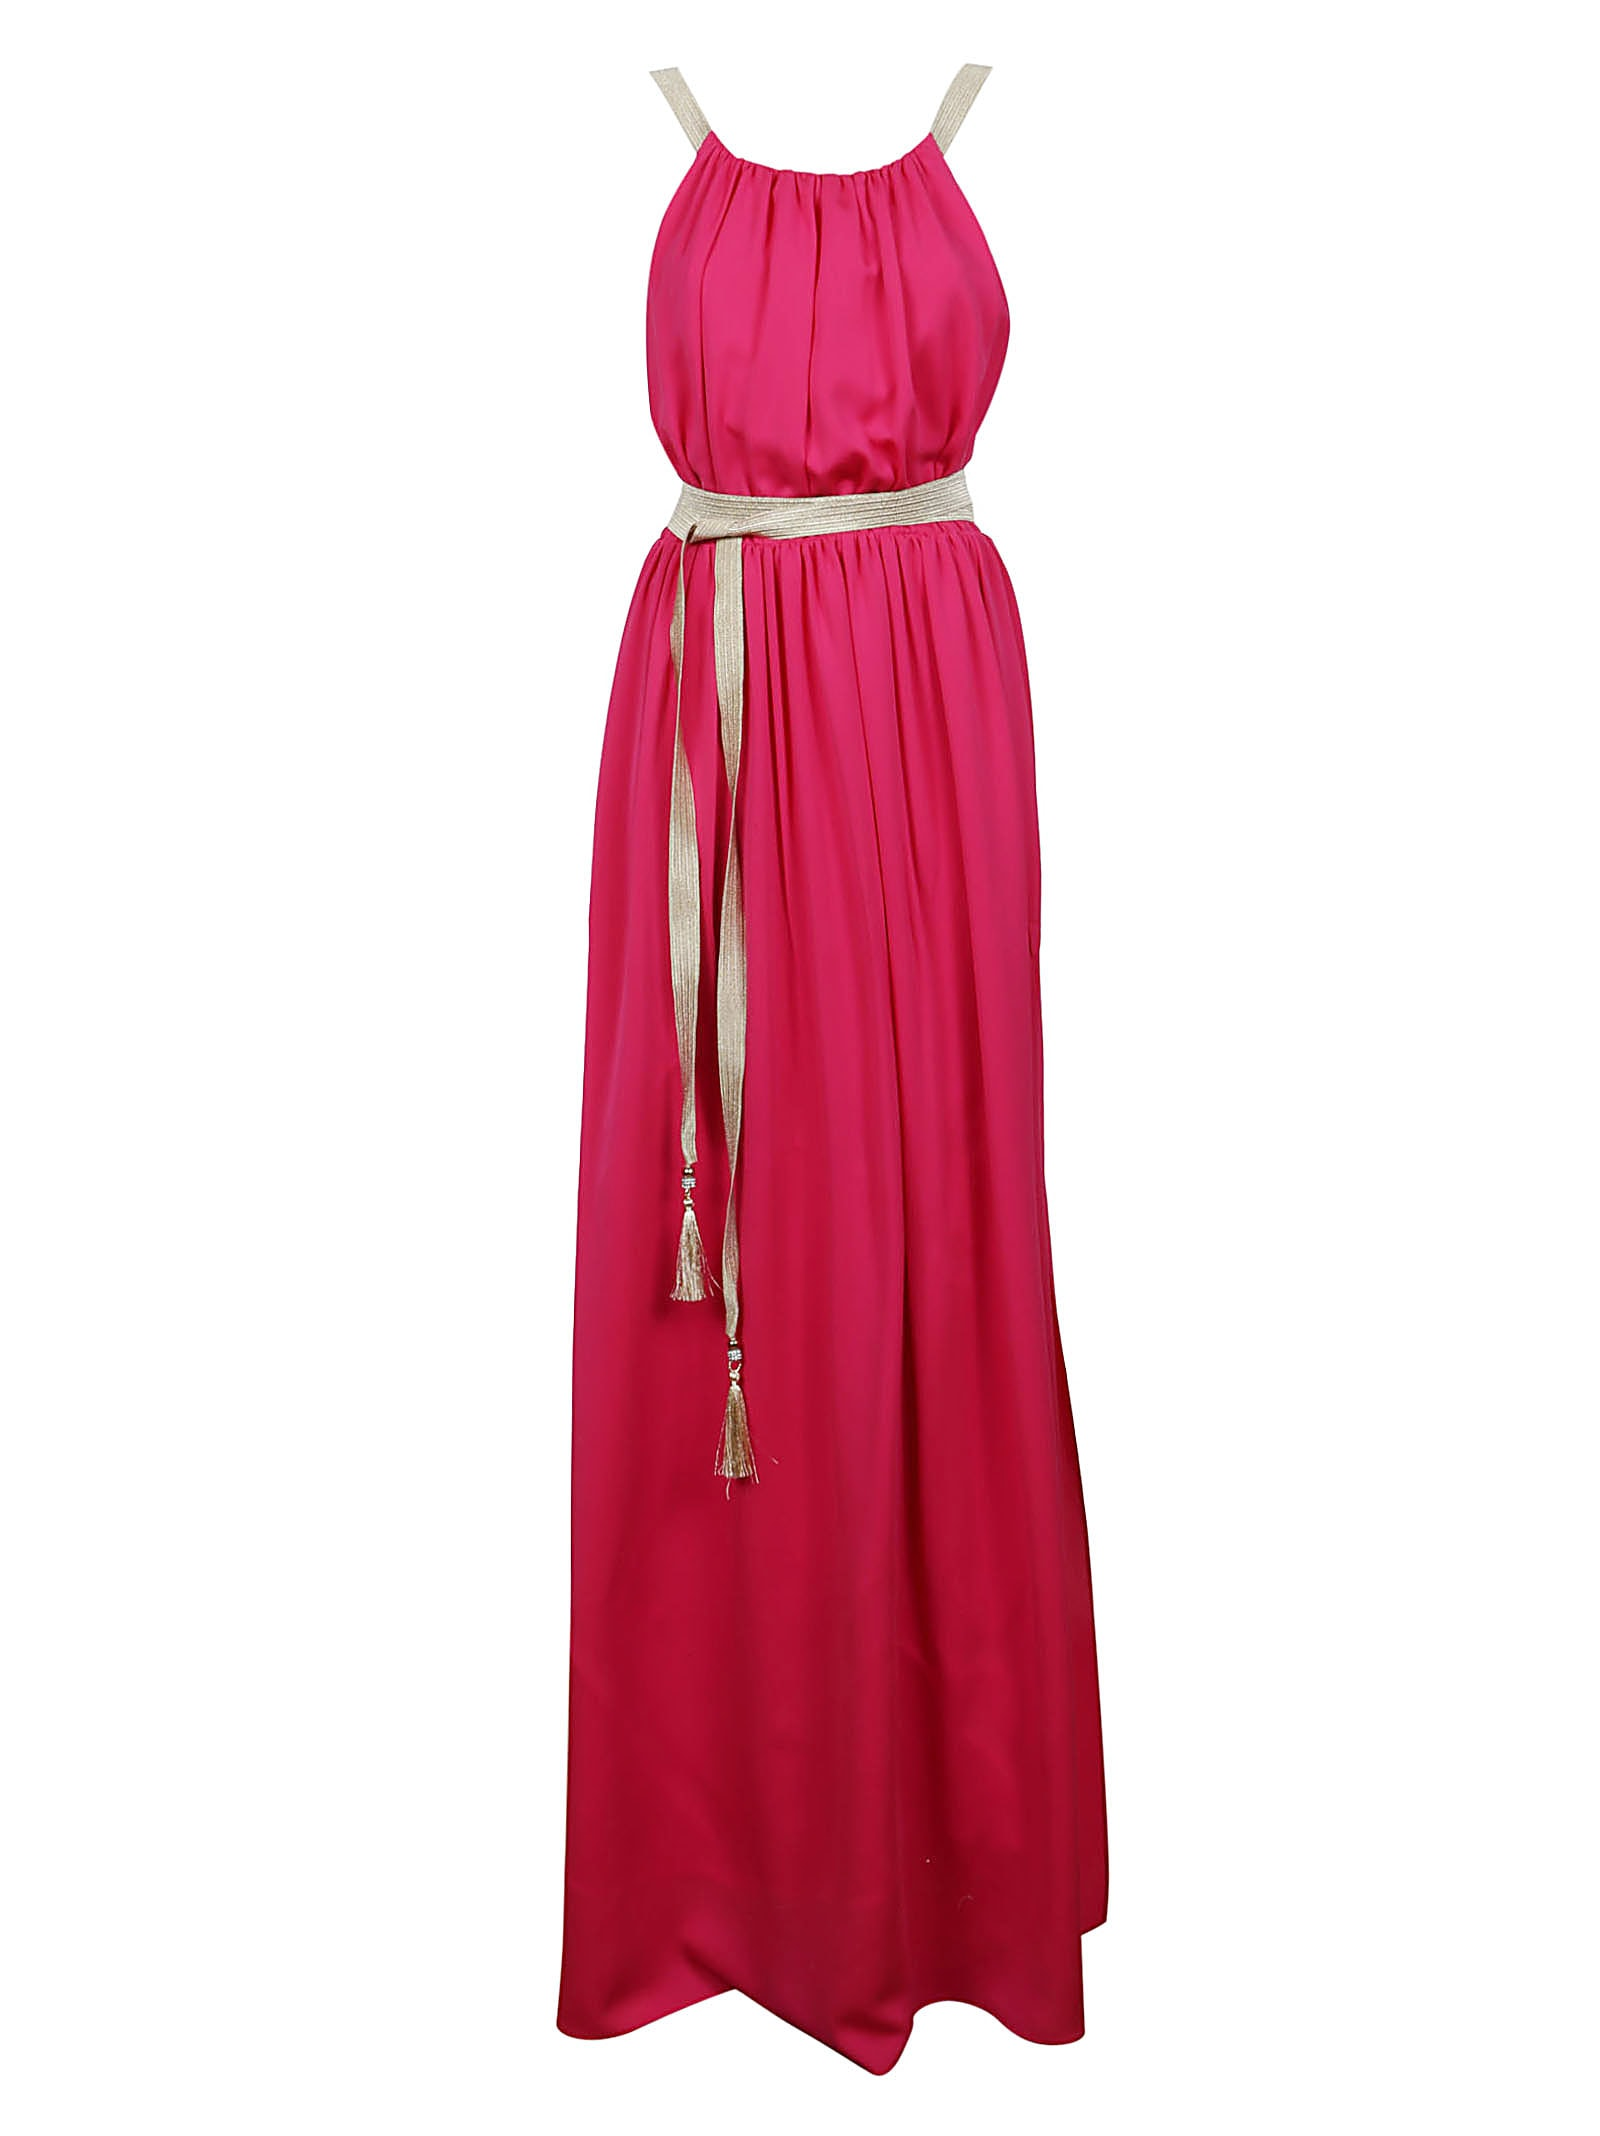 Fuchsia Silk Dress